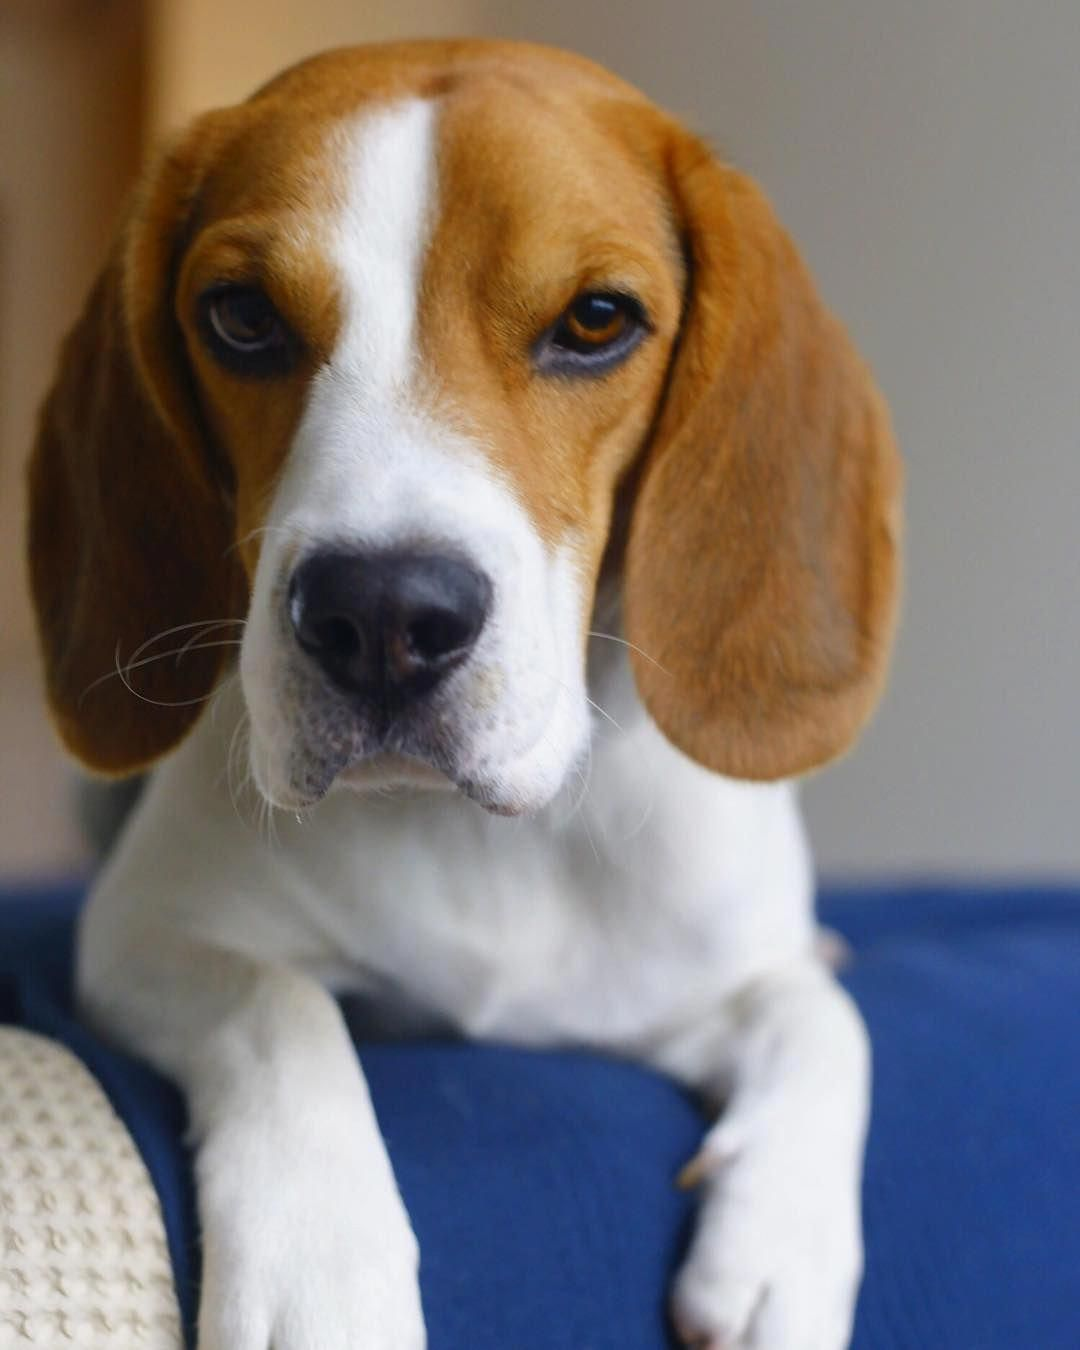 Find Out More On The Friendly Beagle Dogs Personality